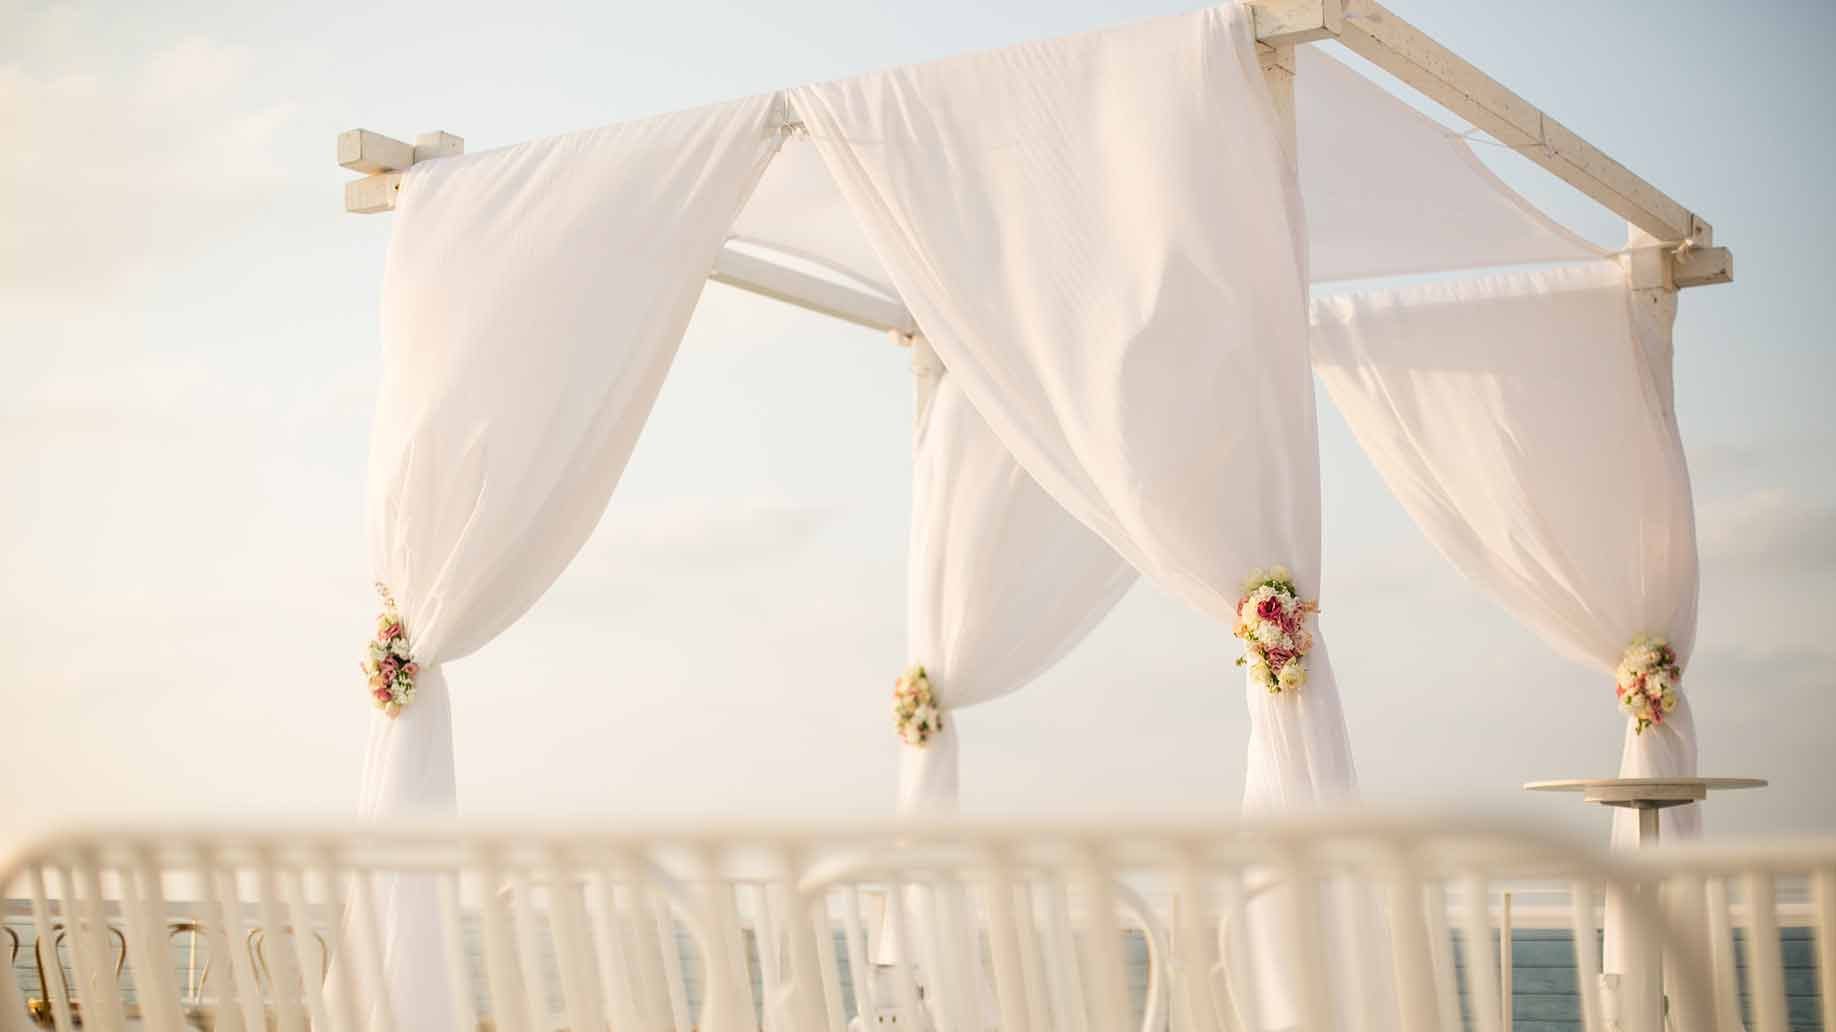 wedding chuppah canopy rental cost prices wedding canopy wedding chuppah canopy